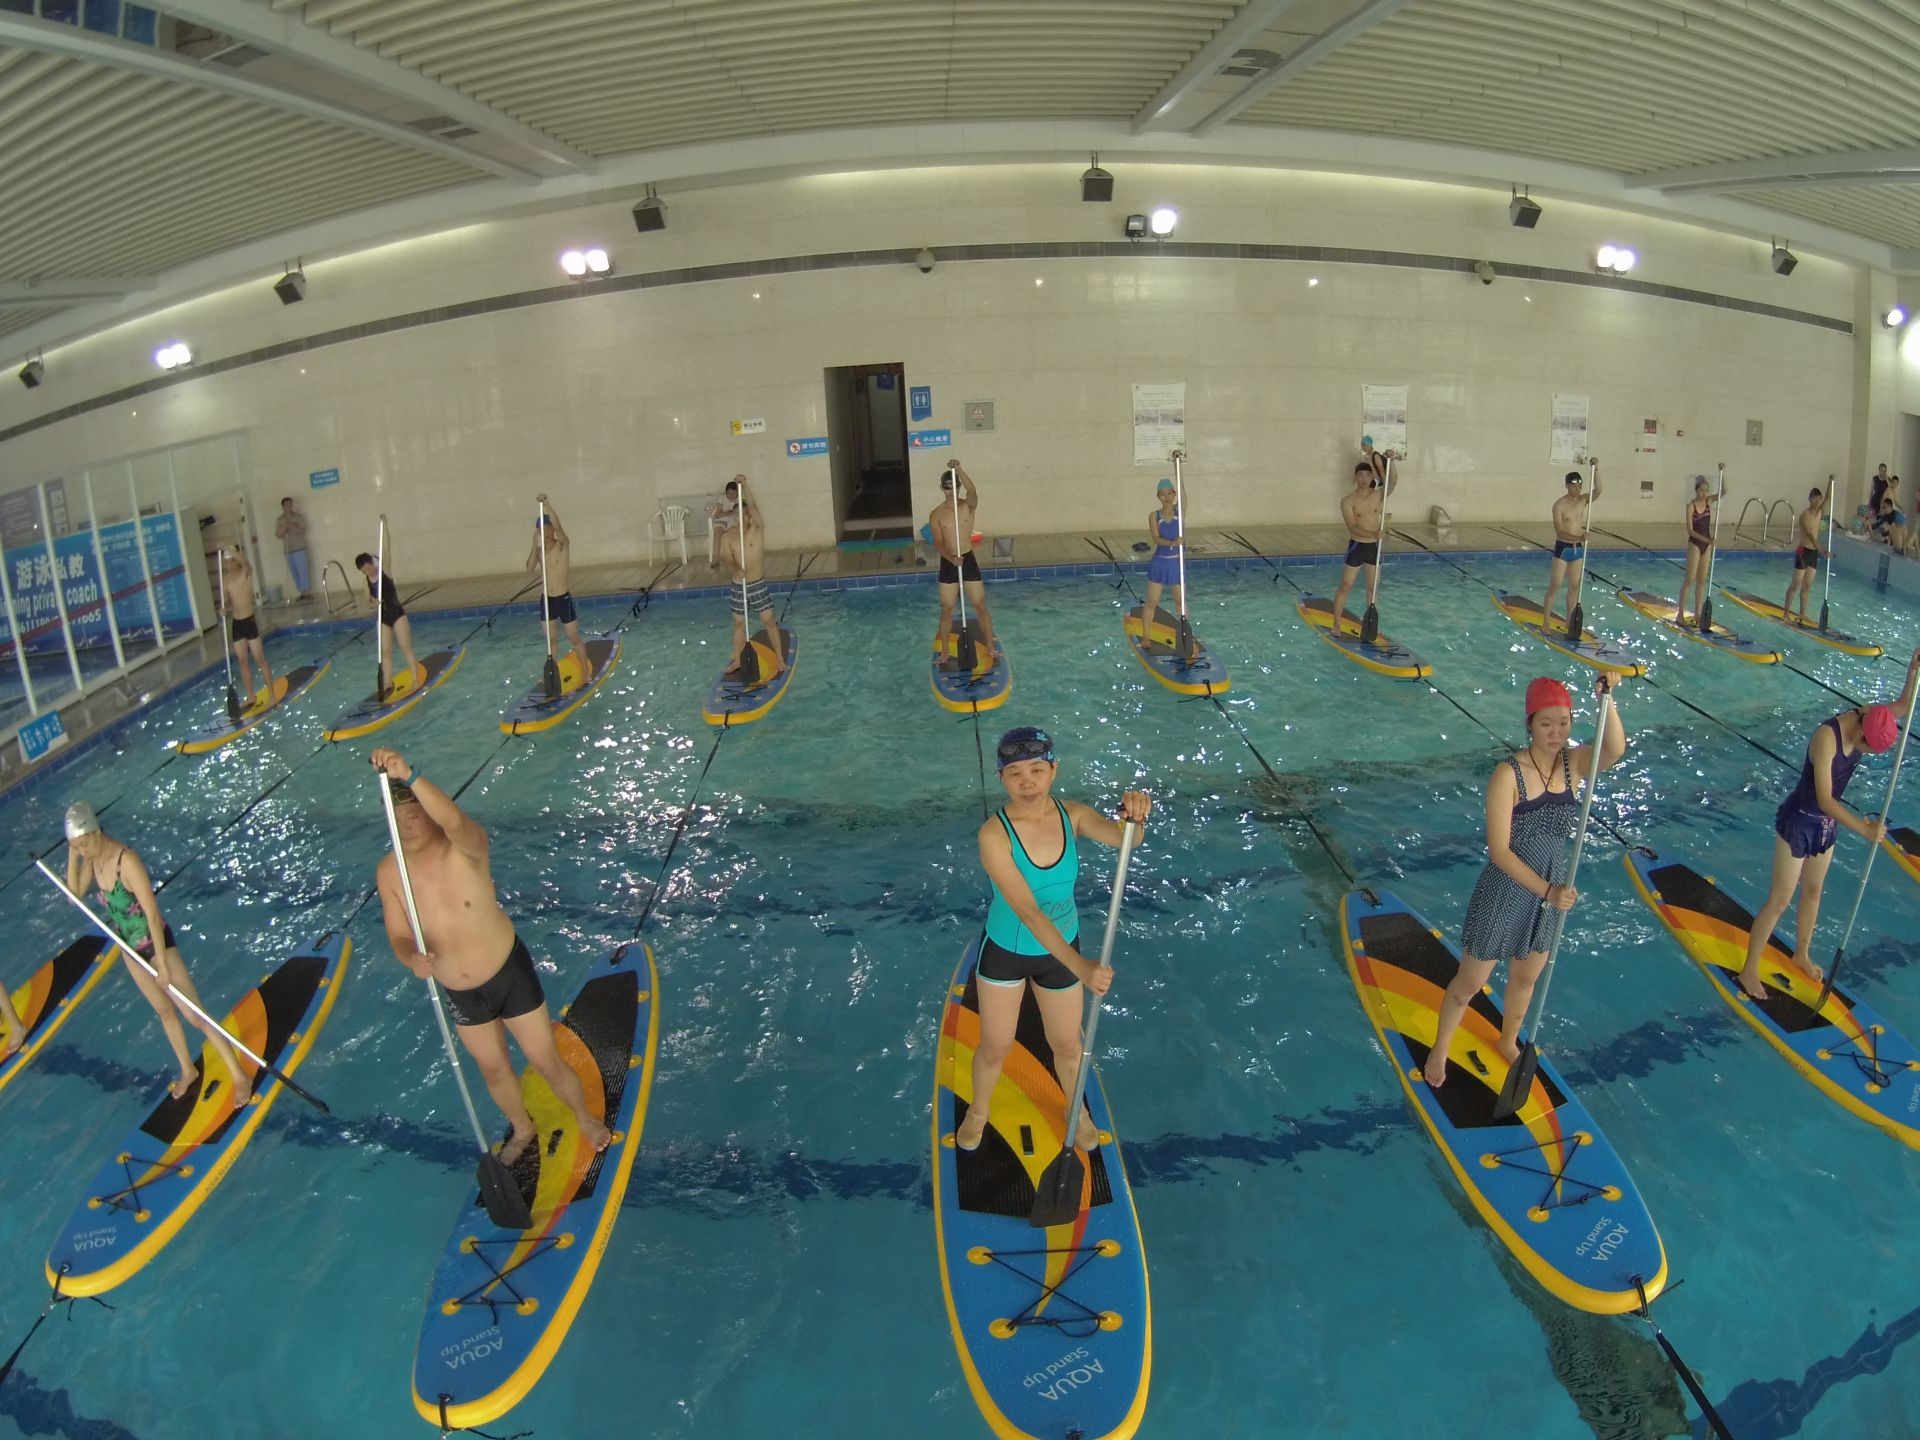 La Chine Découvre Le Stand-Up Paddle En Piscine ! destiné Piscine Chine